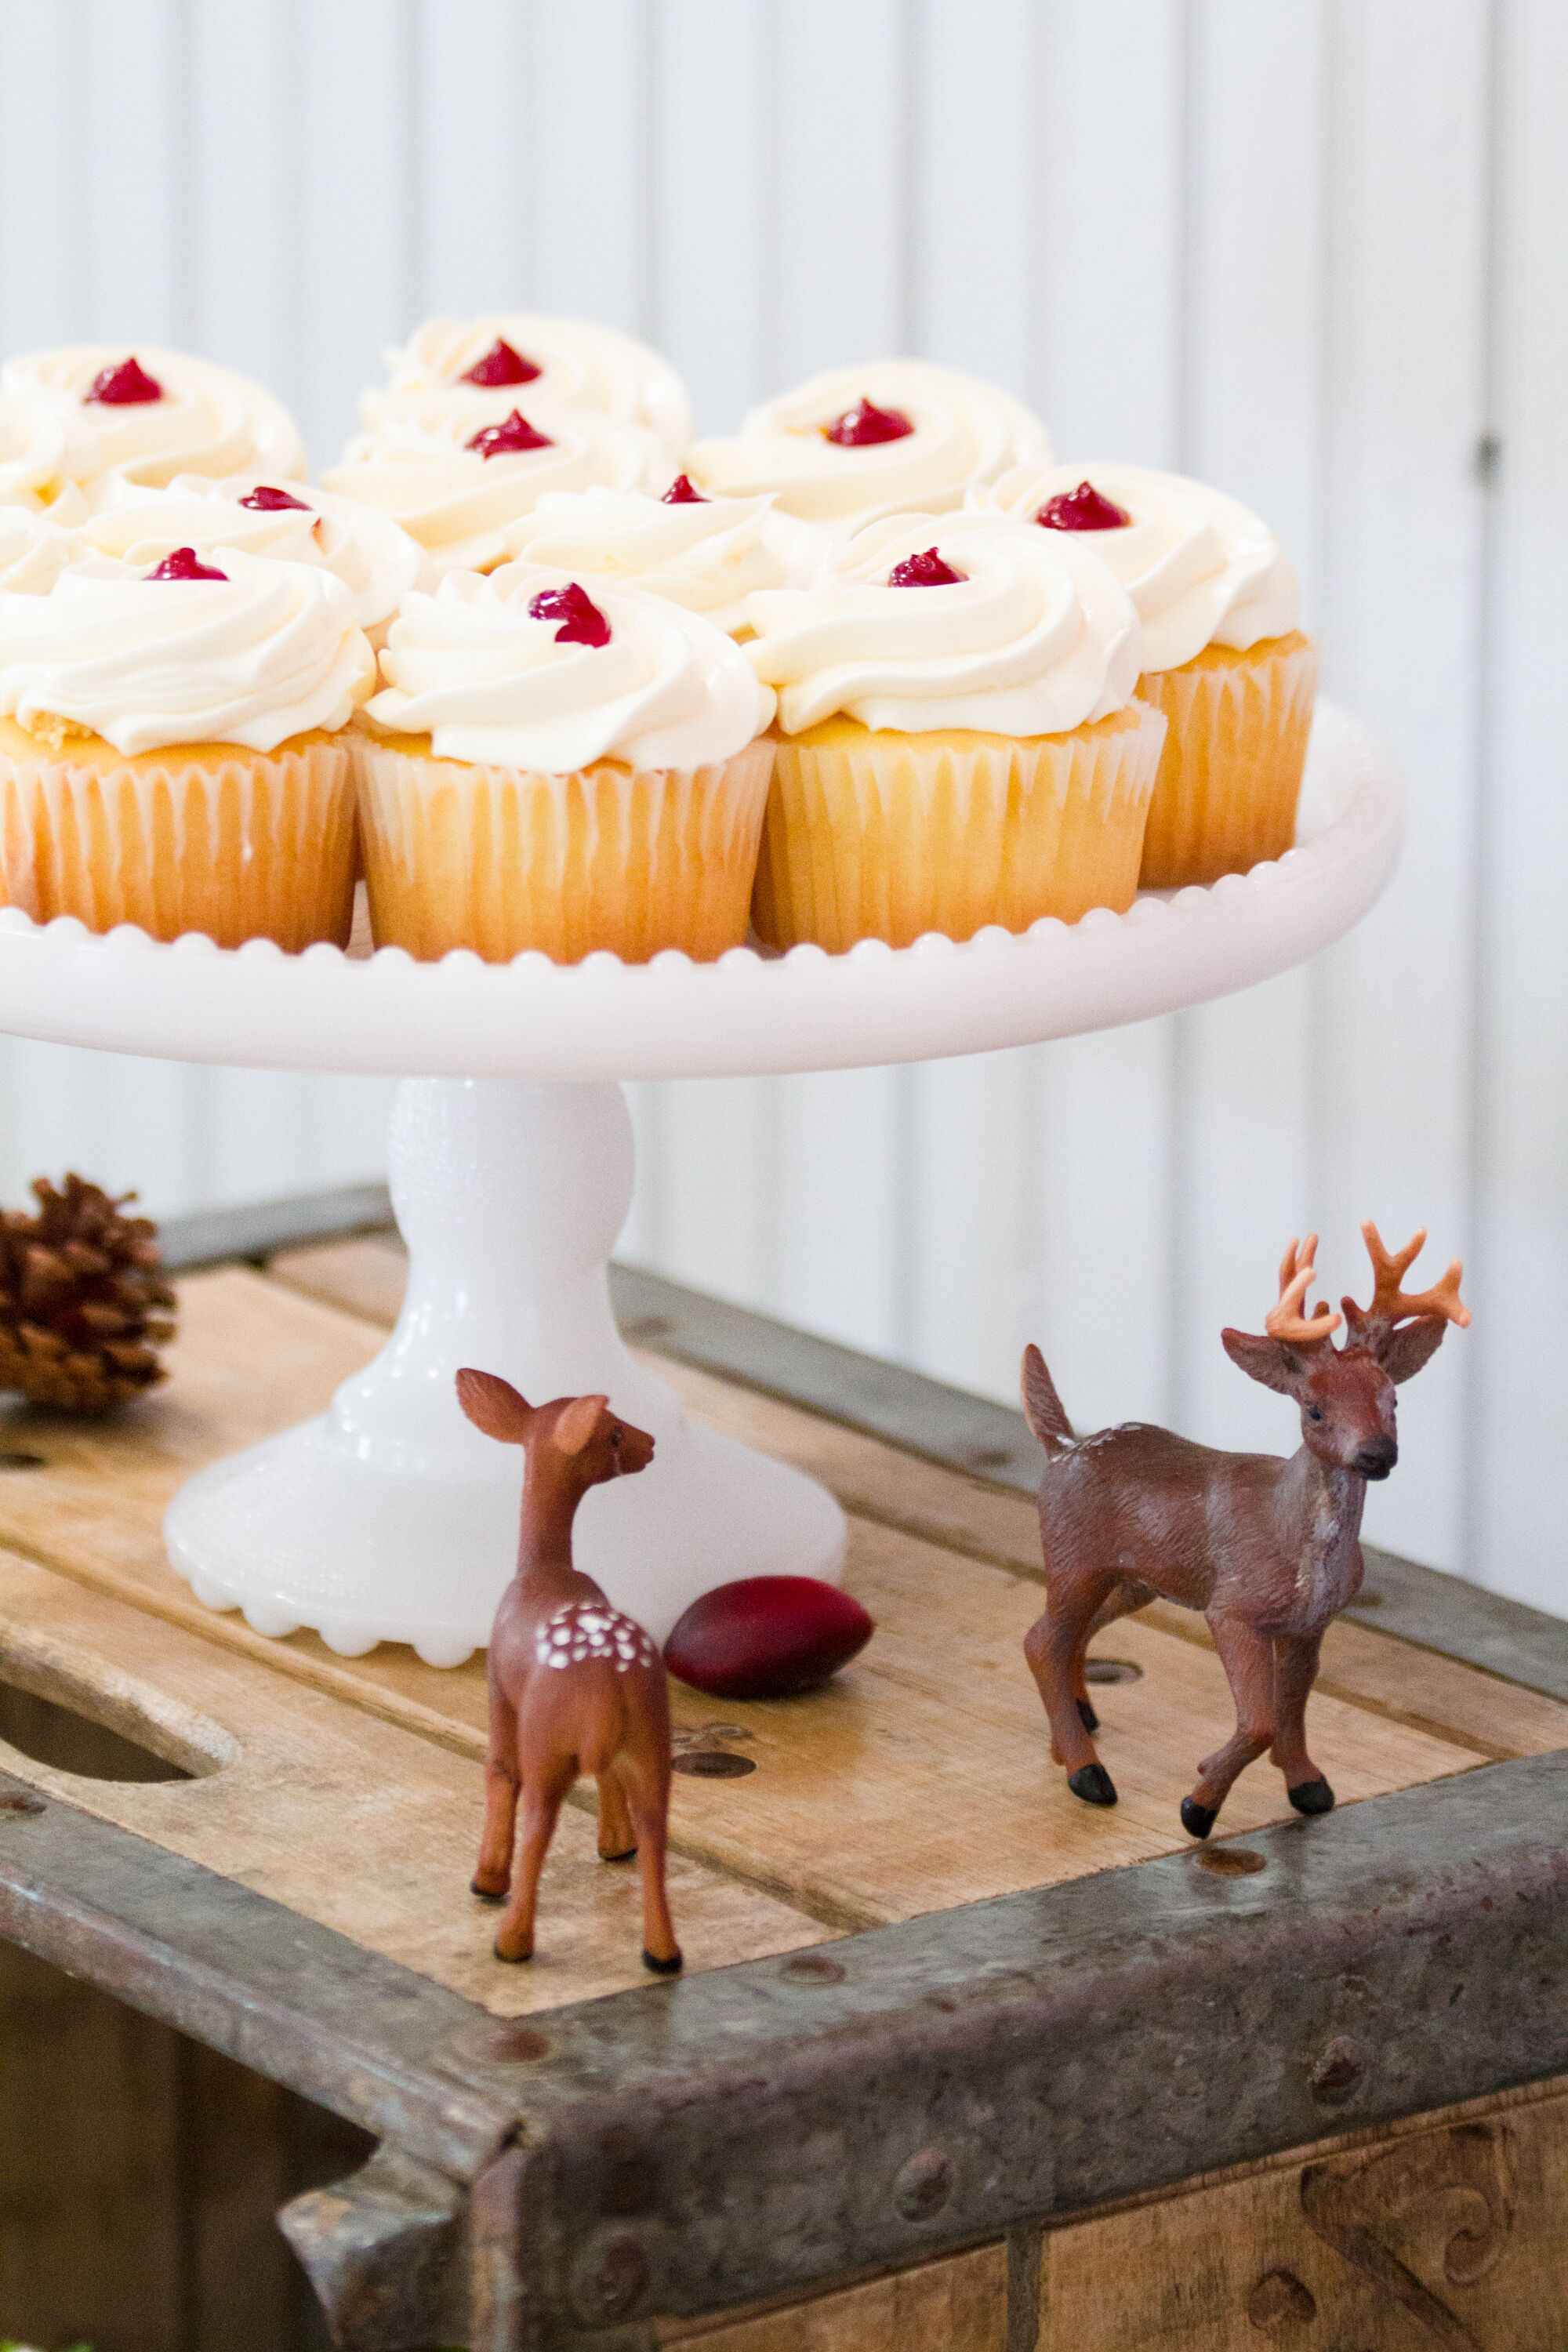 Miniature Forest Animal Figurines Decor